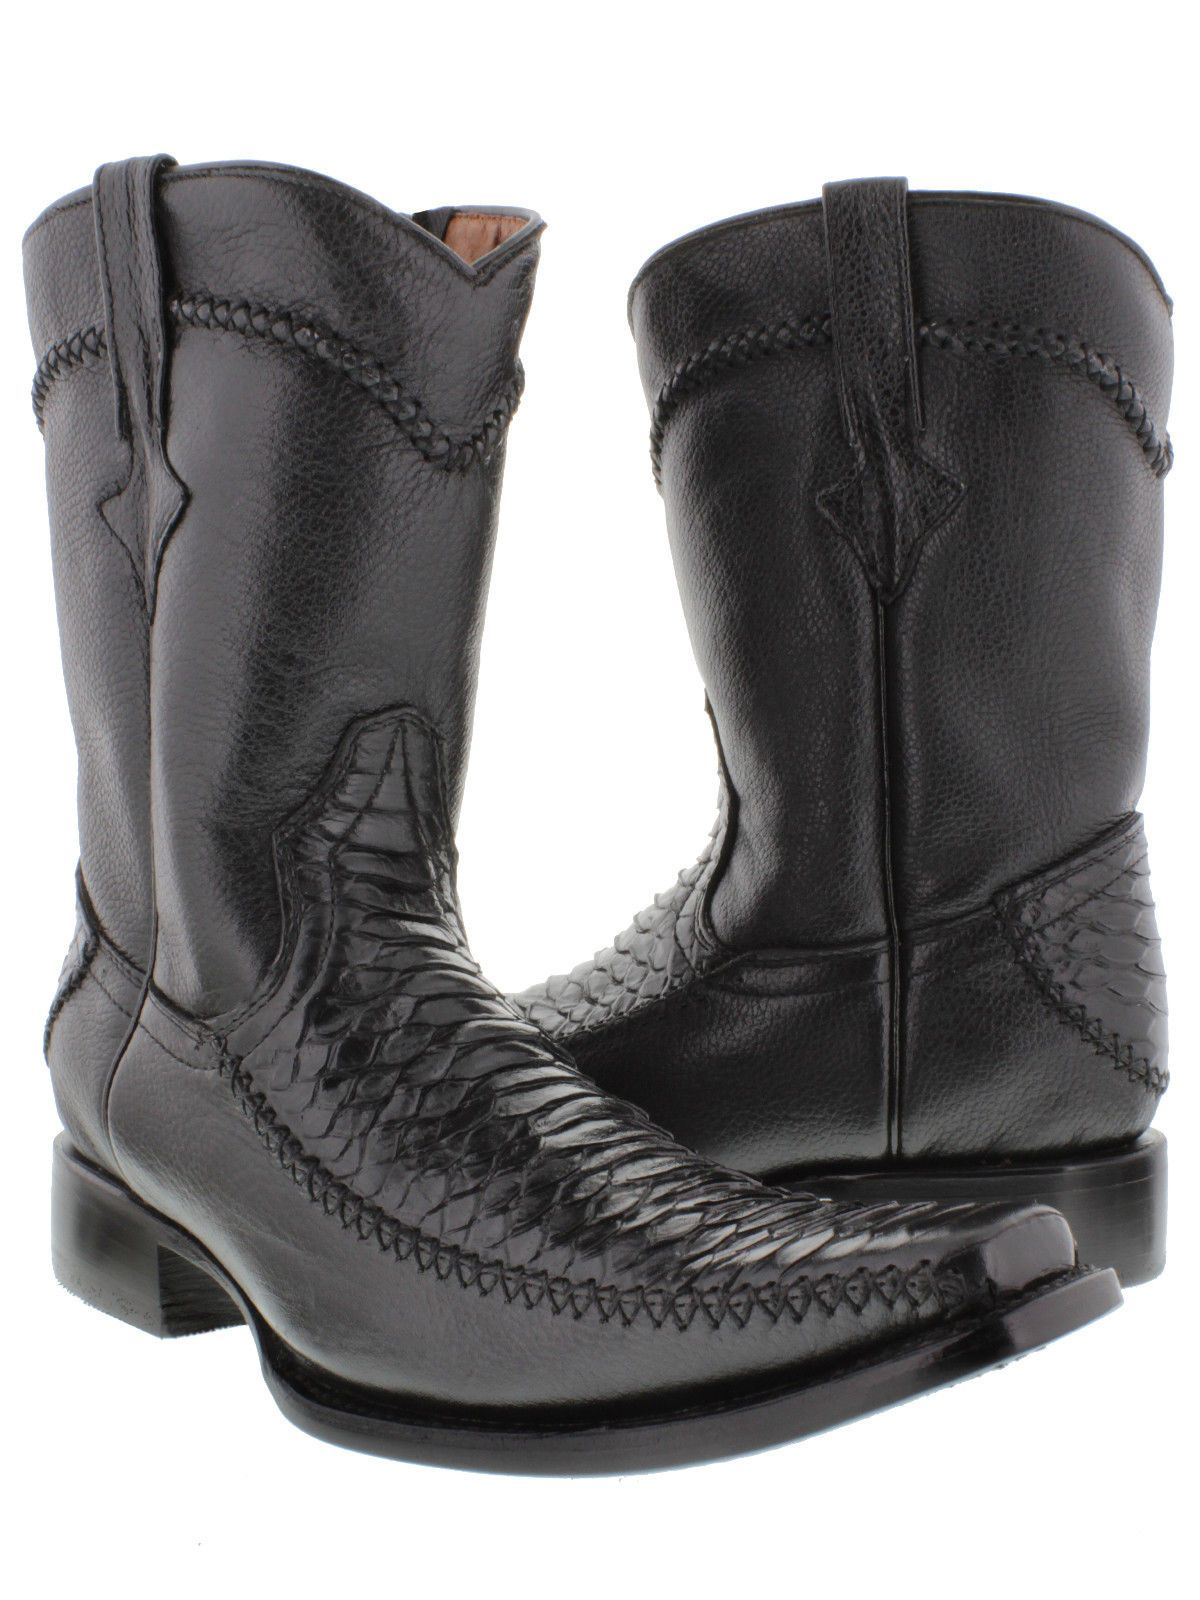 Dress black and white snake boots